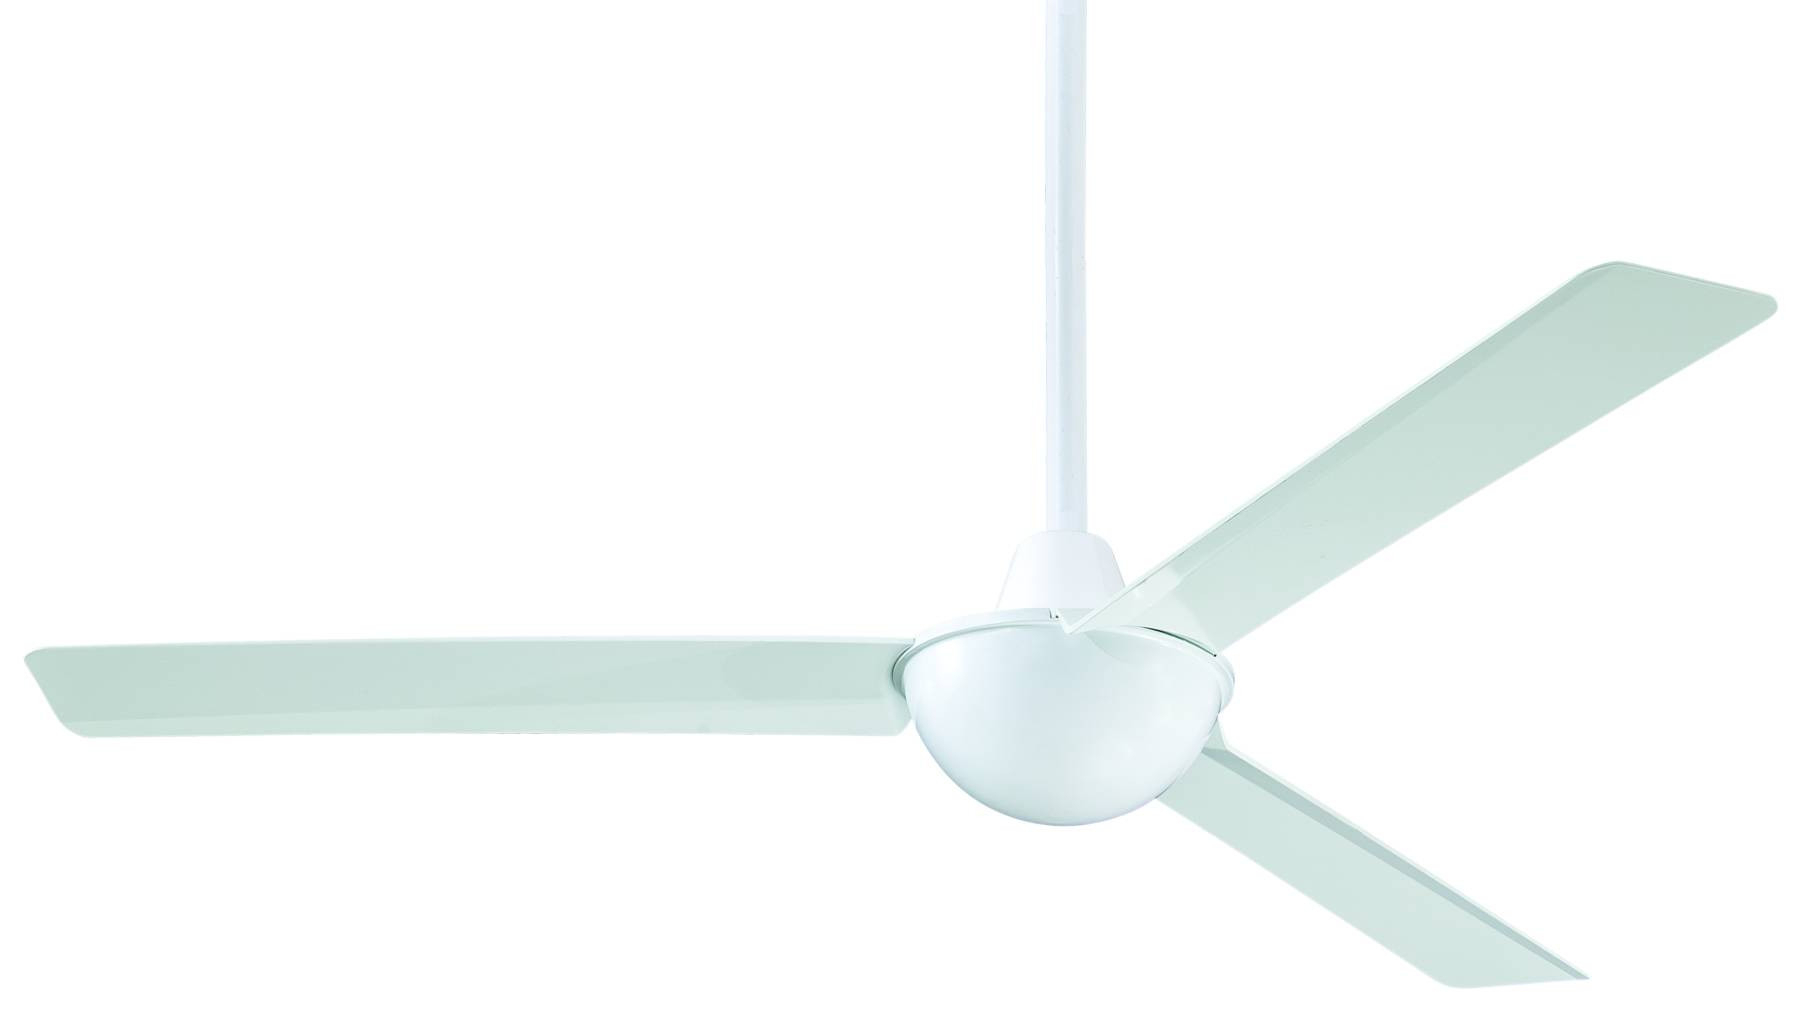 Kewl 3 Blade Ceiling Fans With Regard To Fashionable Minka Aire Kewl Ceiling Fan Model Mf F833 Wh In White (View 11 of 20)